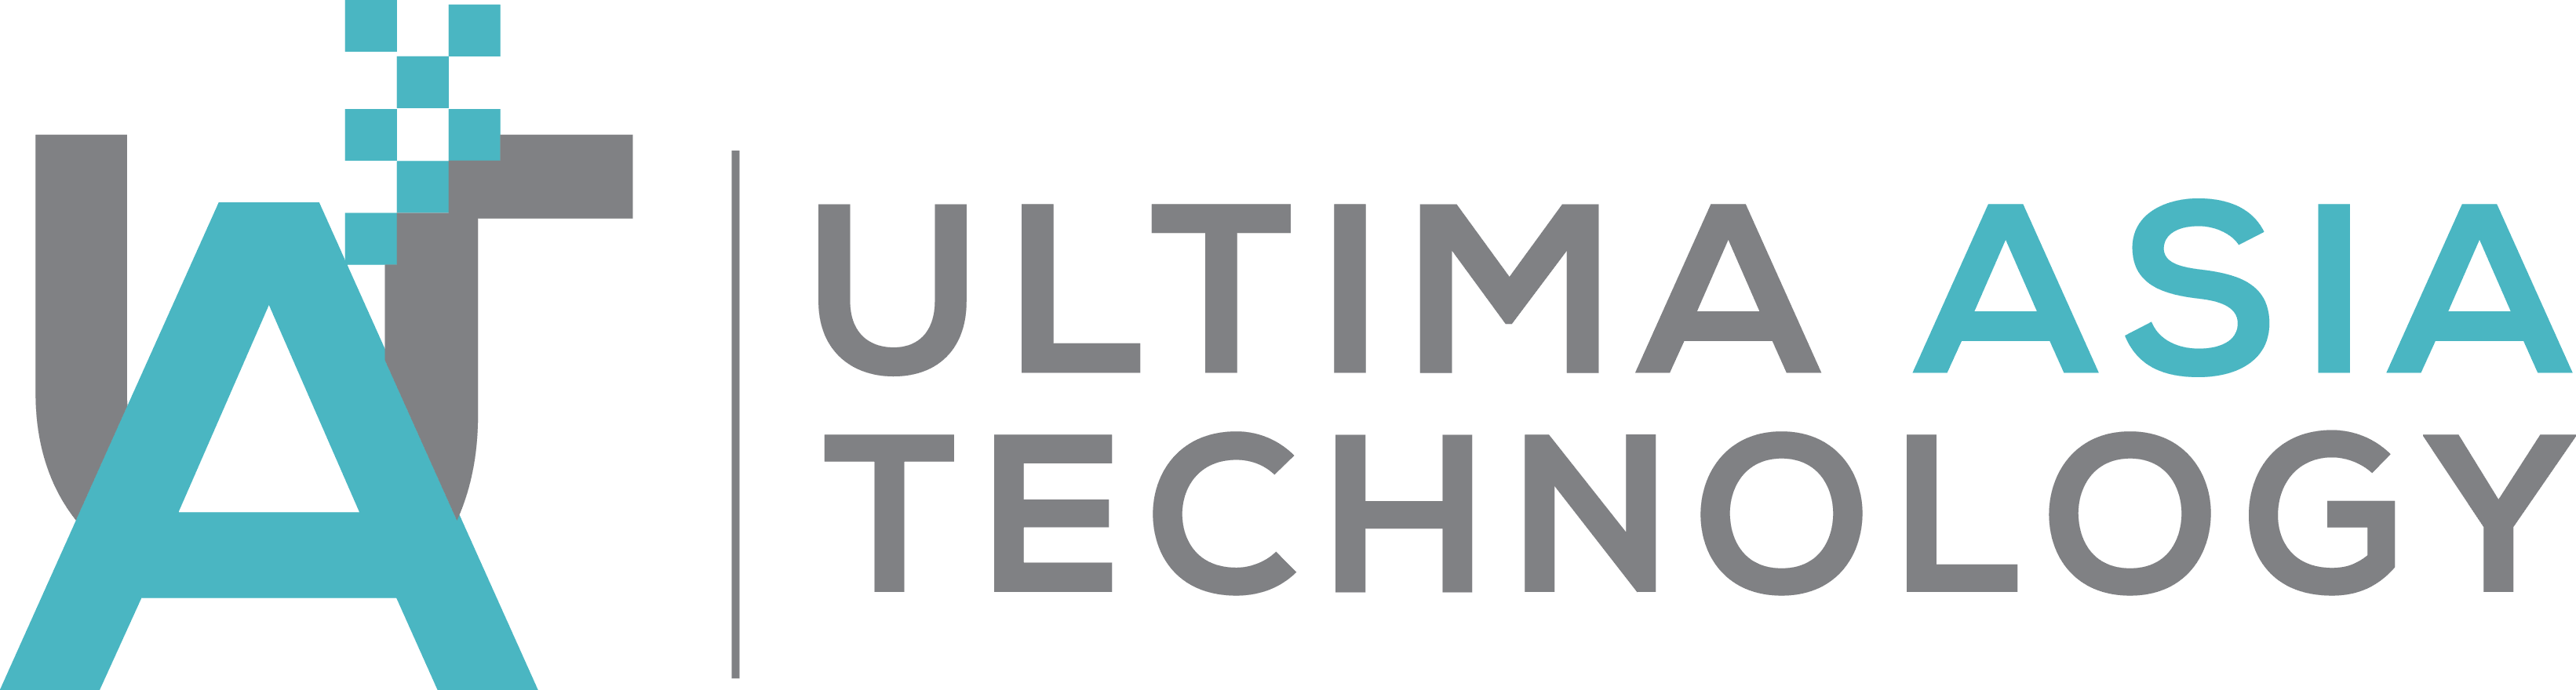 Ultima Asia Technology